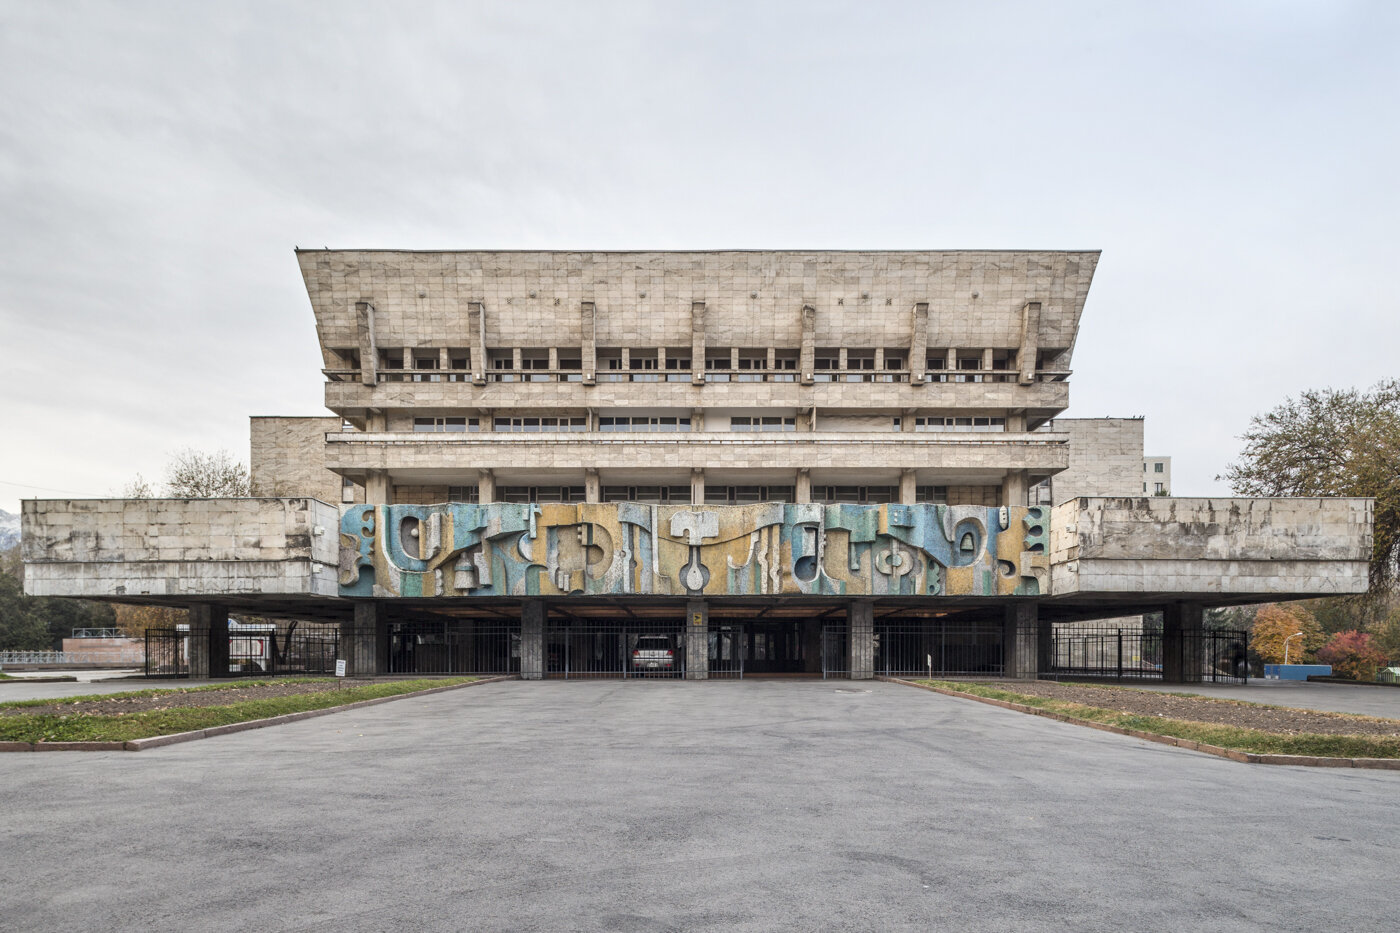 State Academic Russian Theatre for children and young people (former Palace of Culture AHBK), by A. Petrova, Z. Mustafina, G. Dzhakipova, G. Stulov, G. Nikitin and artists Y. Funkorenko, V. Tverdokhlebov (1981). Almaty, Kazakhstan. Photo: Roberto Conte.